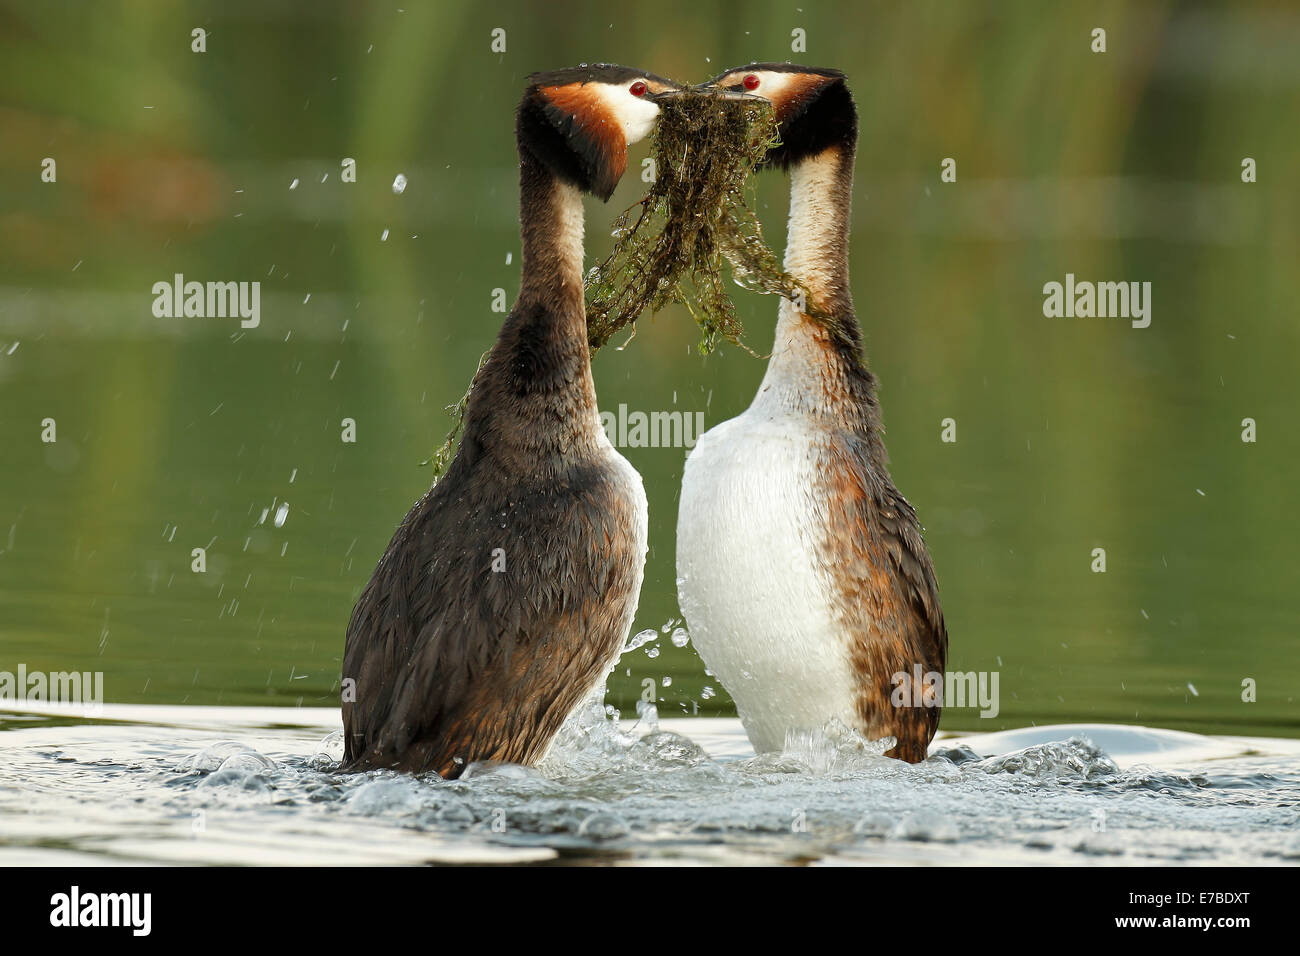 Great Crested Grebes (Podiceps cristatus), male and female performing the courtship dance with nesting material - Stock Image